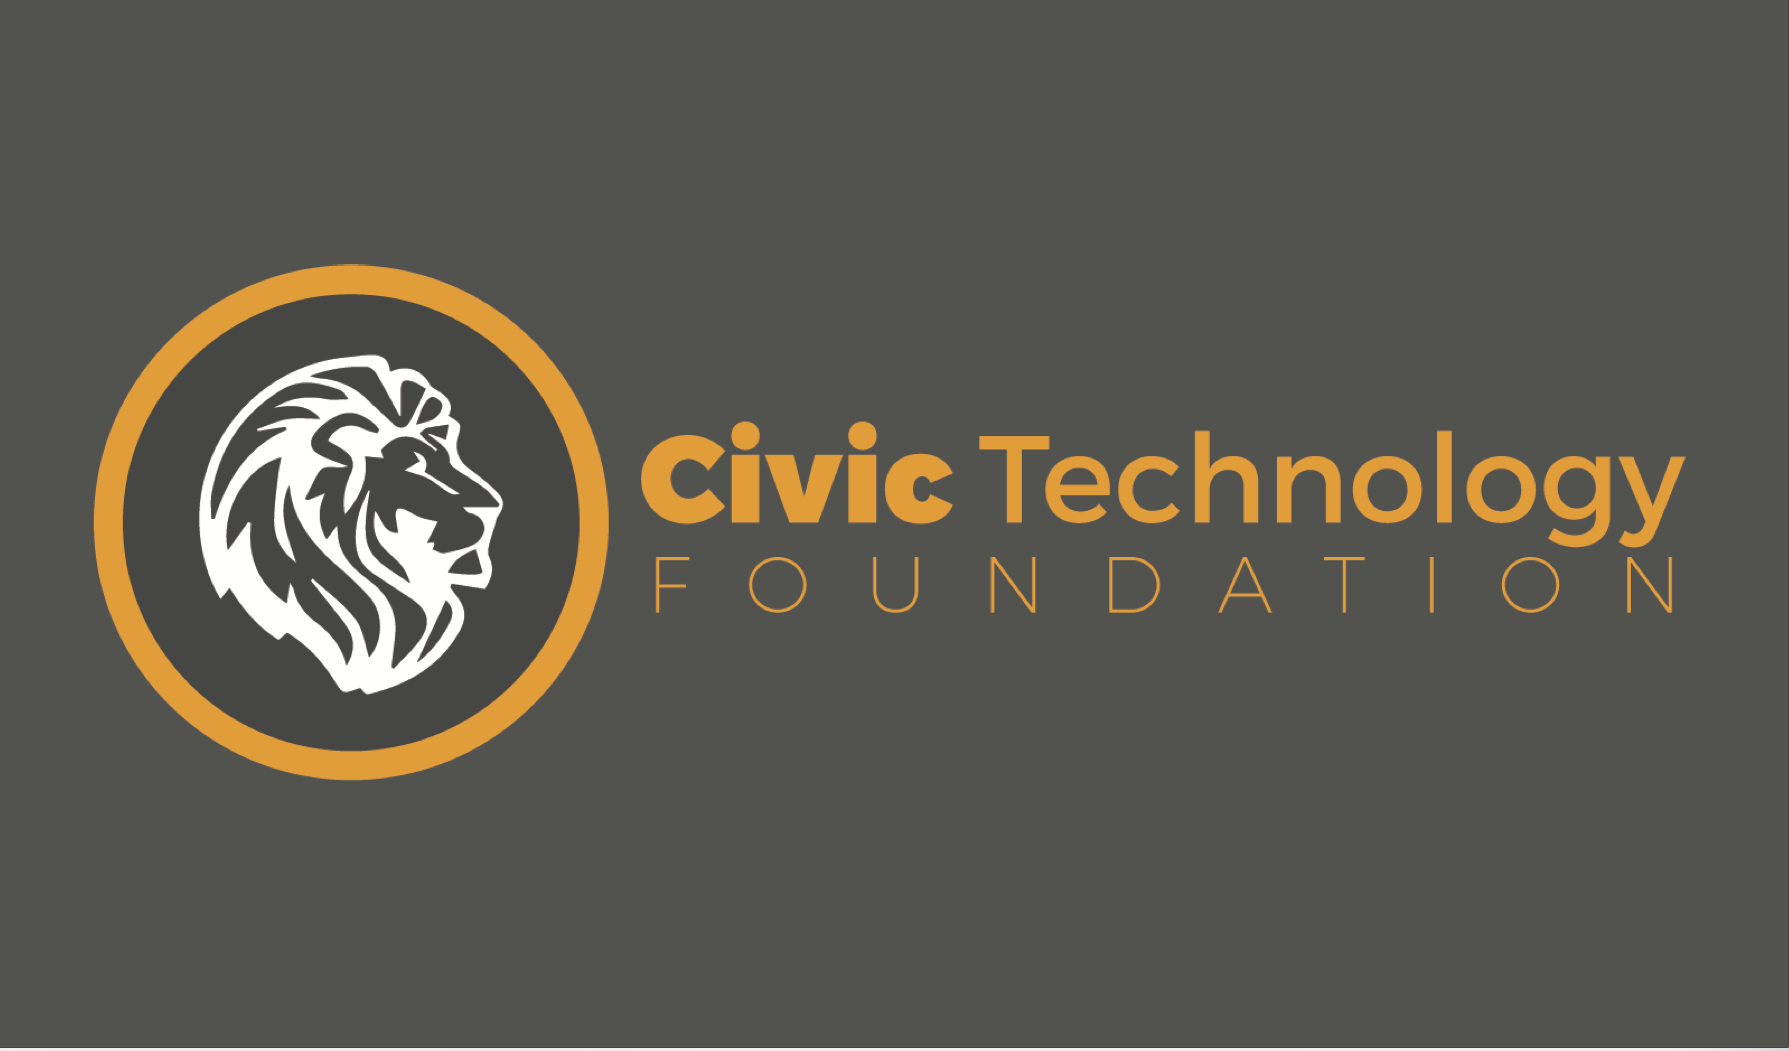 Civic Technology Foundation